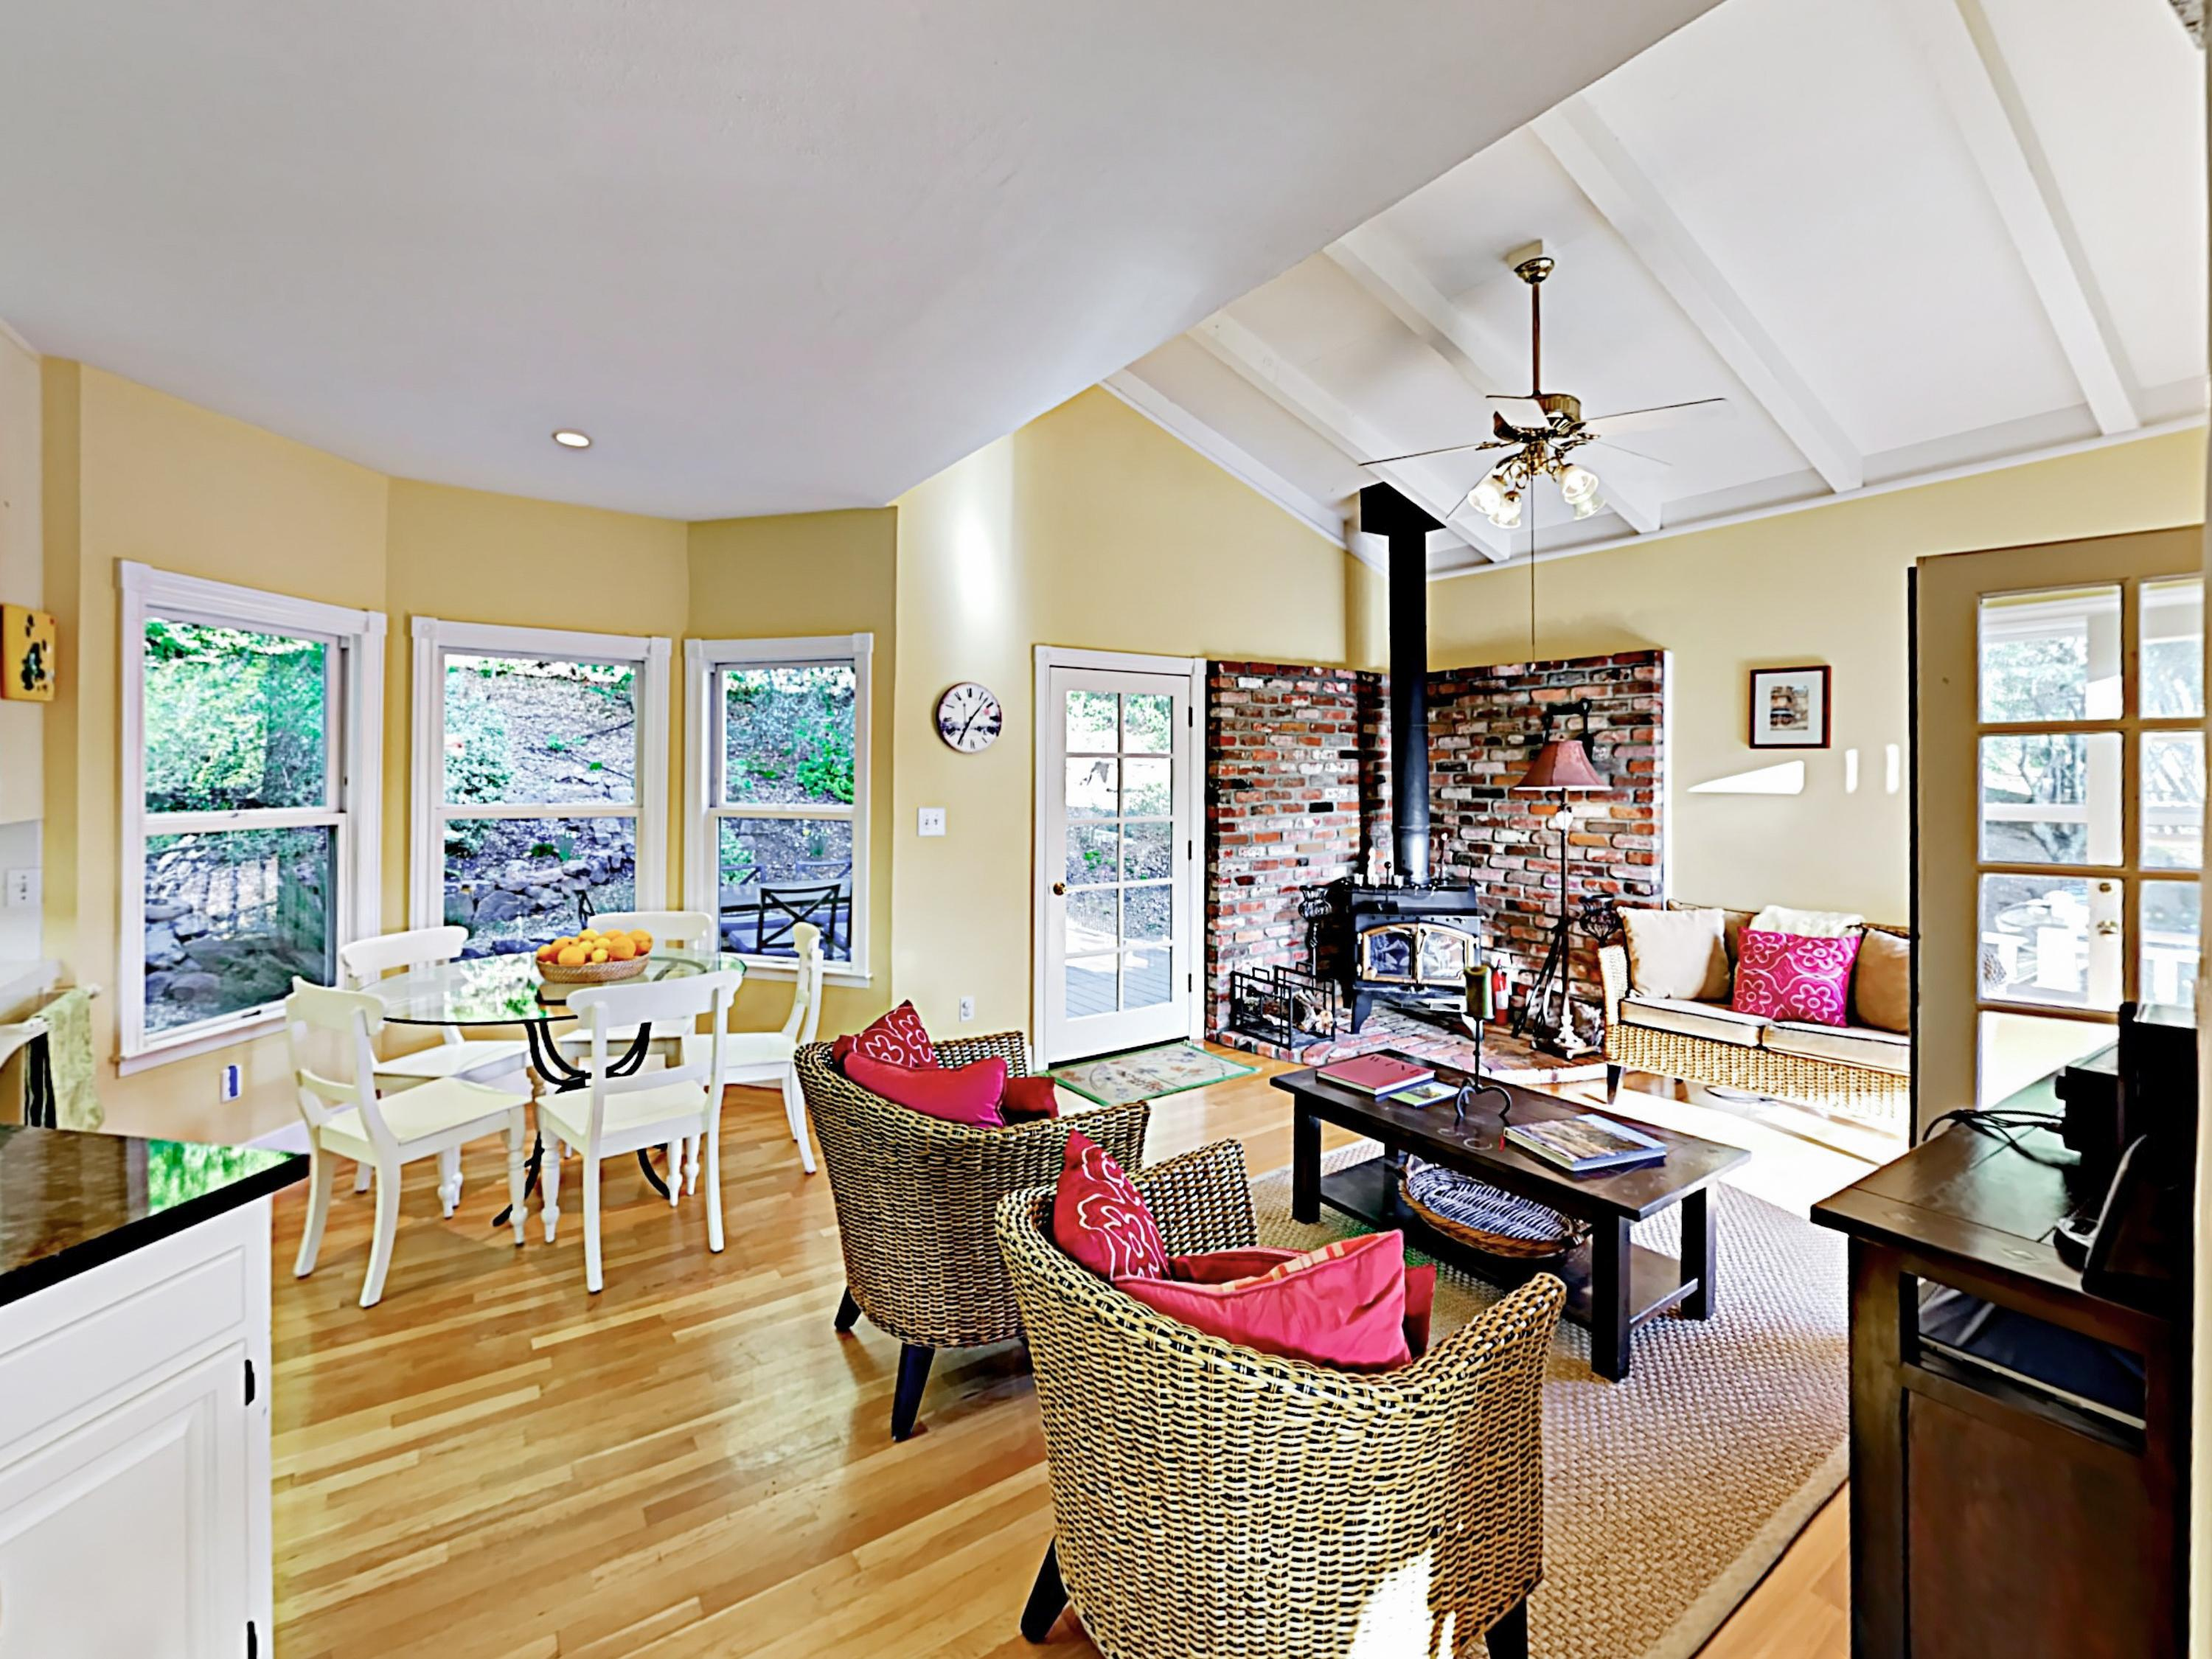 A light-filled and open breakfast nook features comfy wicker seating and a wood-burning stove.